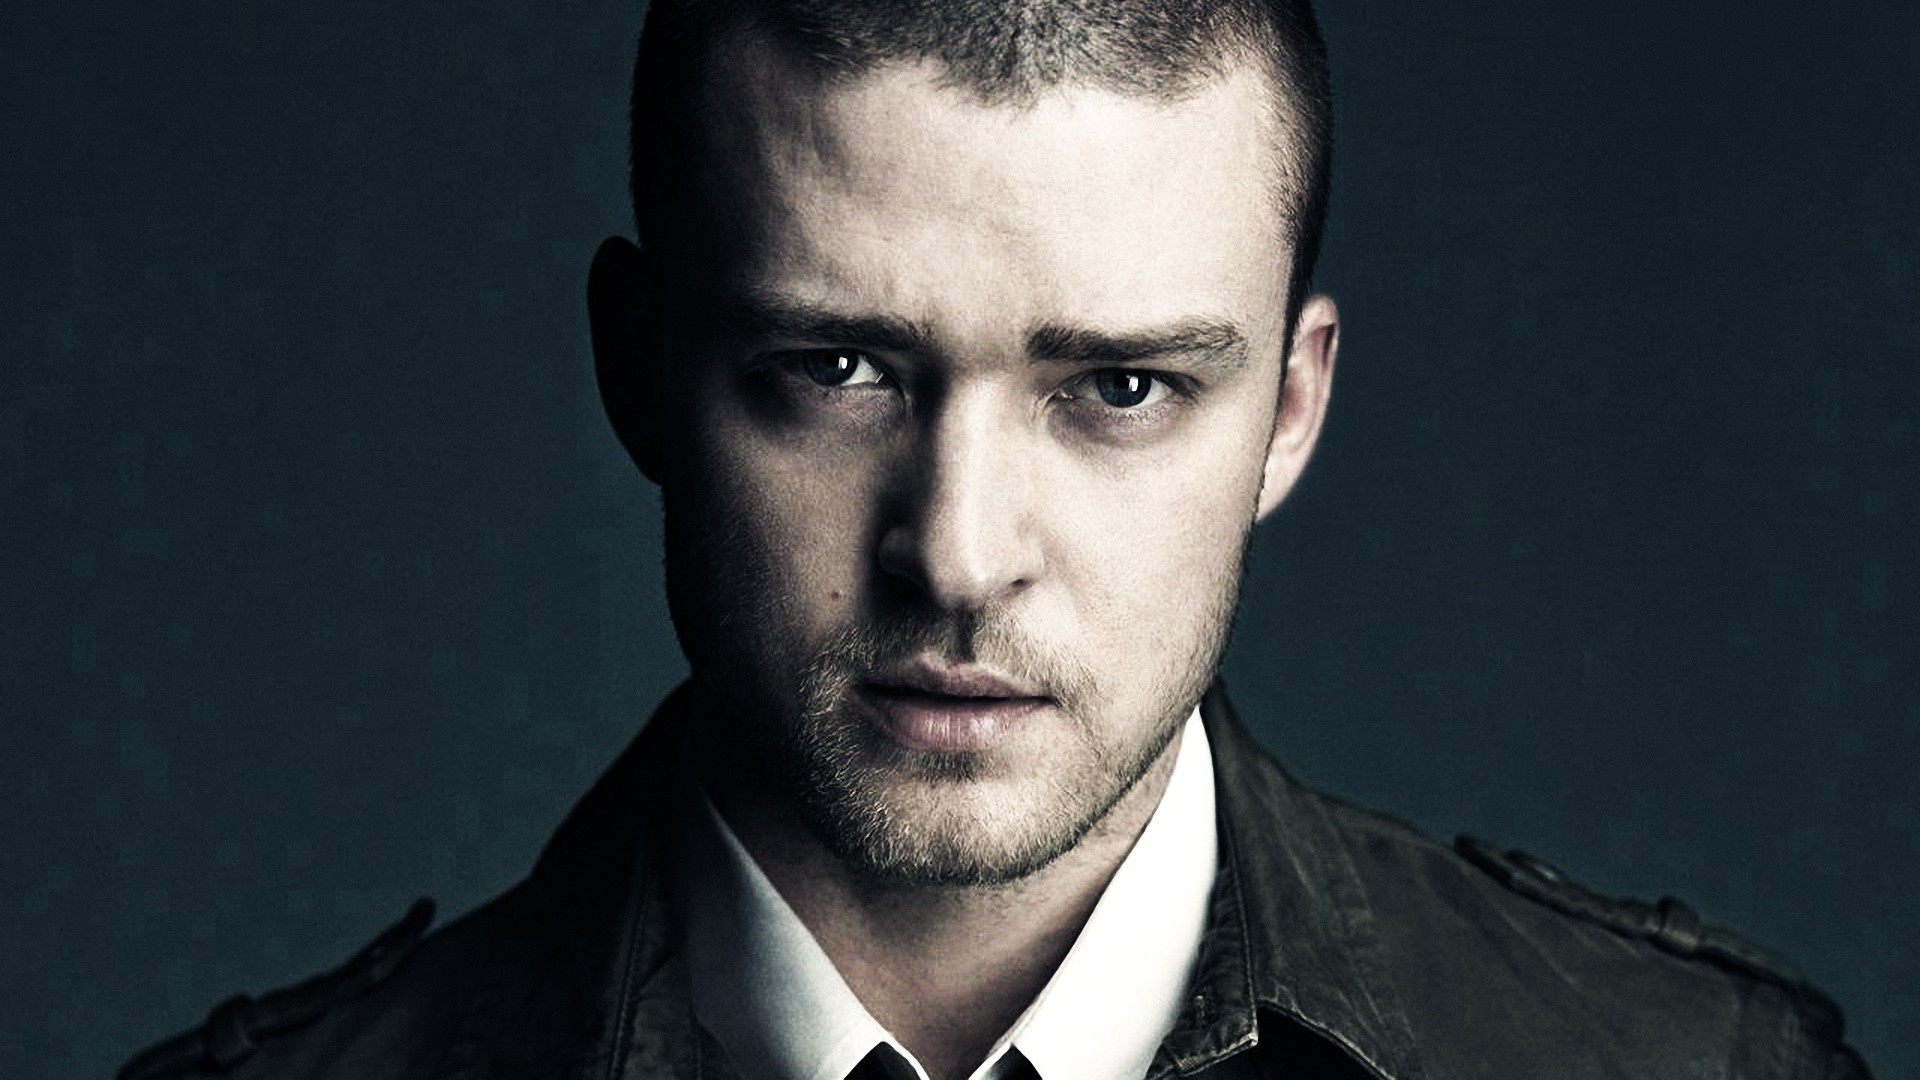 Cute Wallpaper Pictures Free Download Justin Timberlake Pic Wallpaper High Definition High